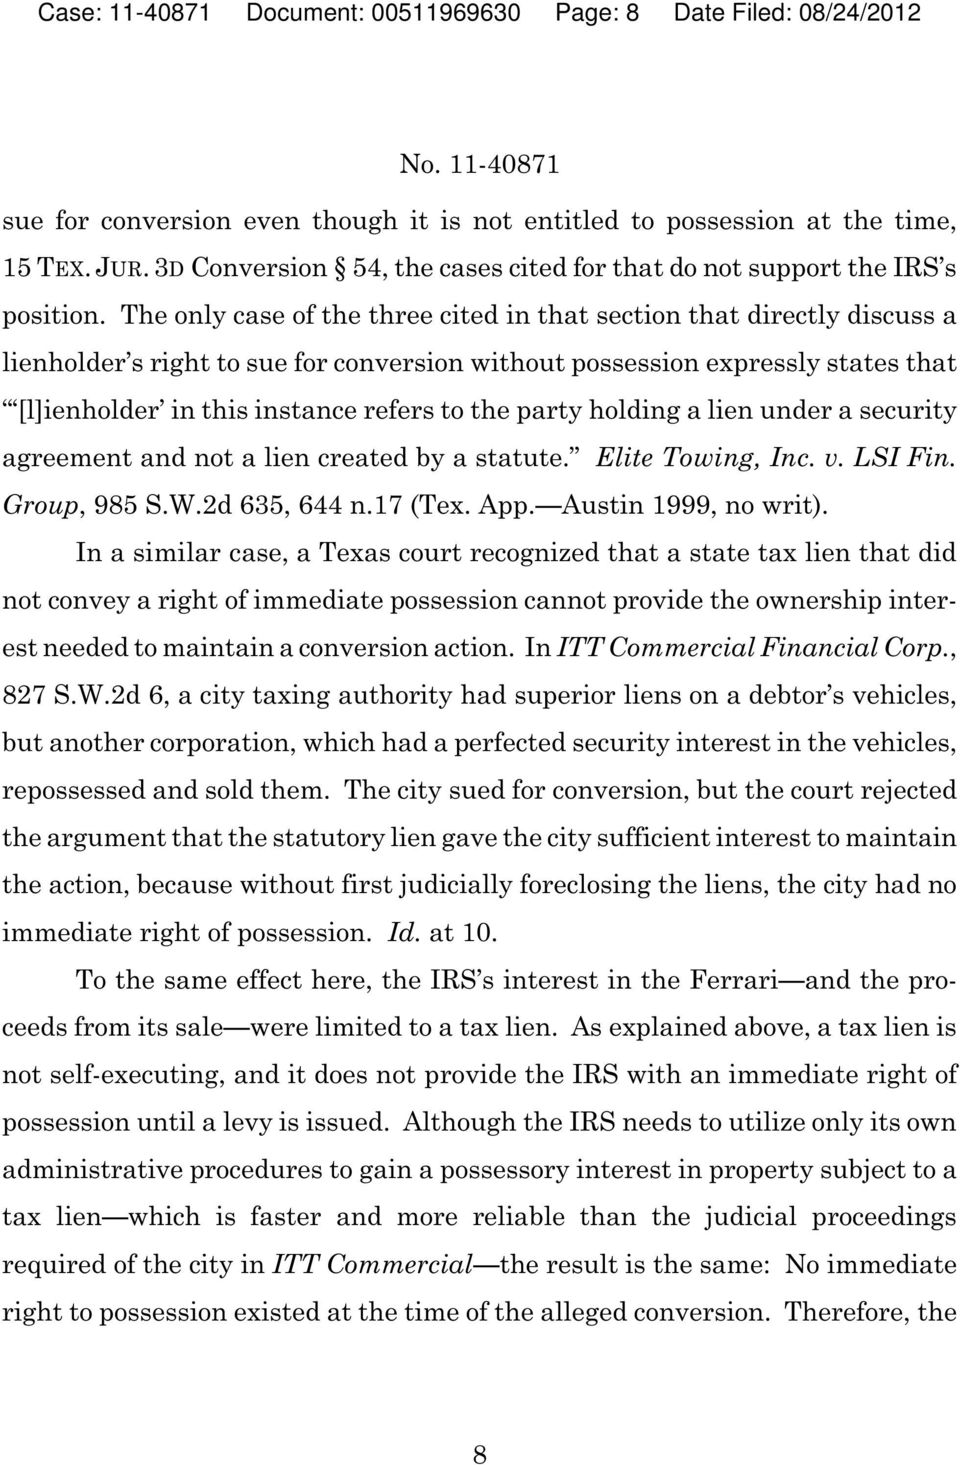 The only case of the three cited in that section that directly discuss a lienholder s right to sue for conversion without possession expressly states that [l]ienholder in this instance refers to the